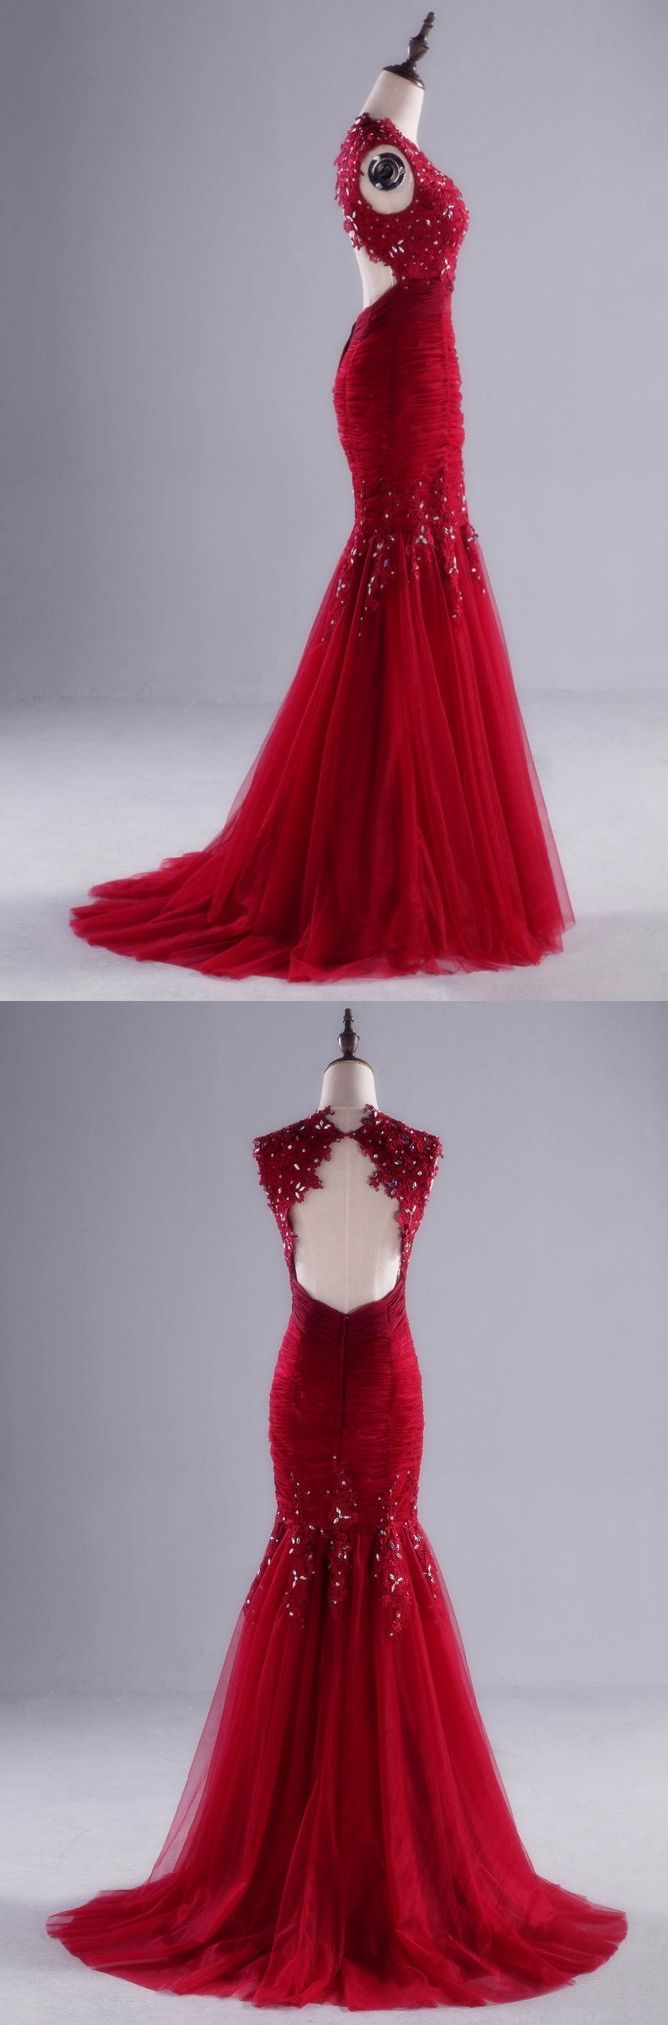 best homecoming dresses images on pinterest short prom dresses